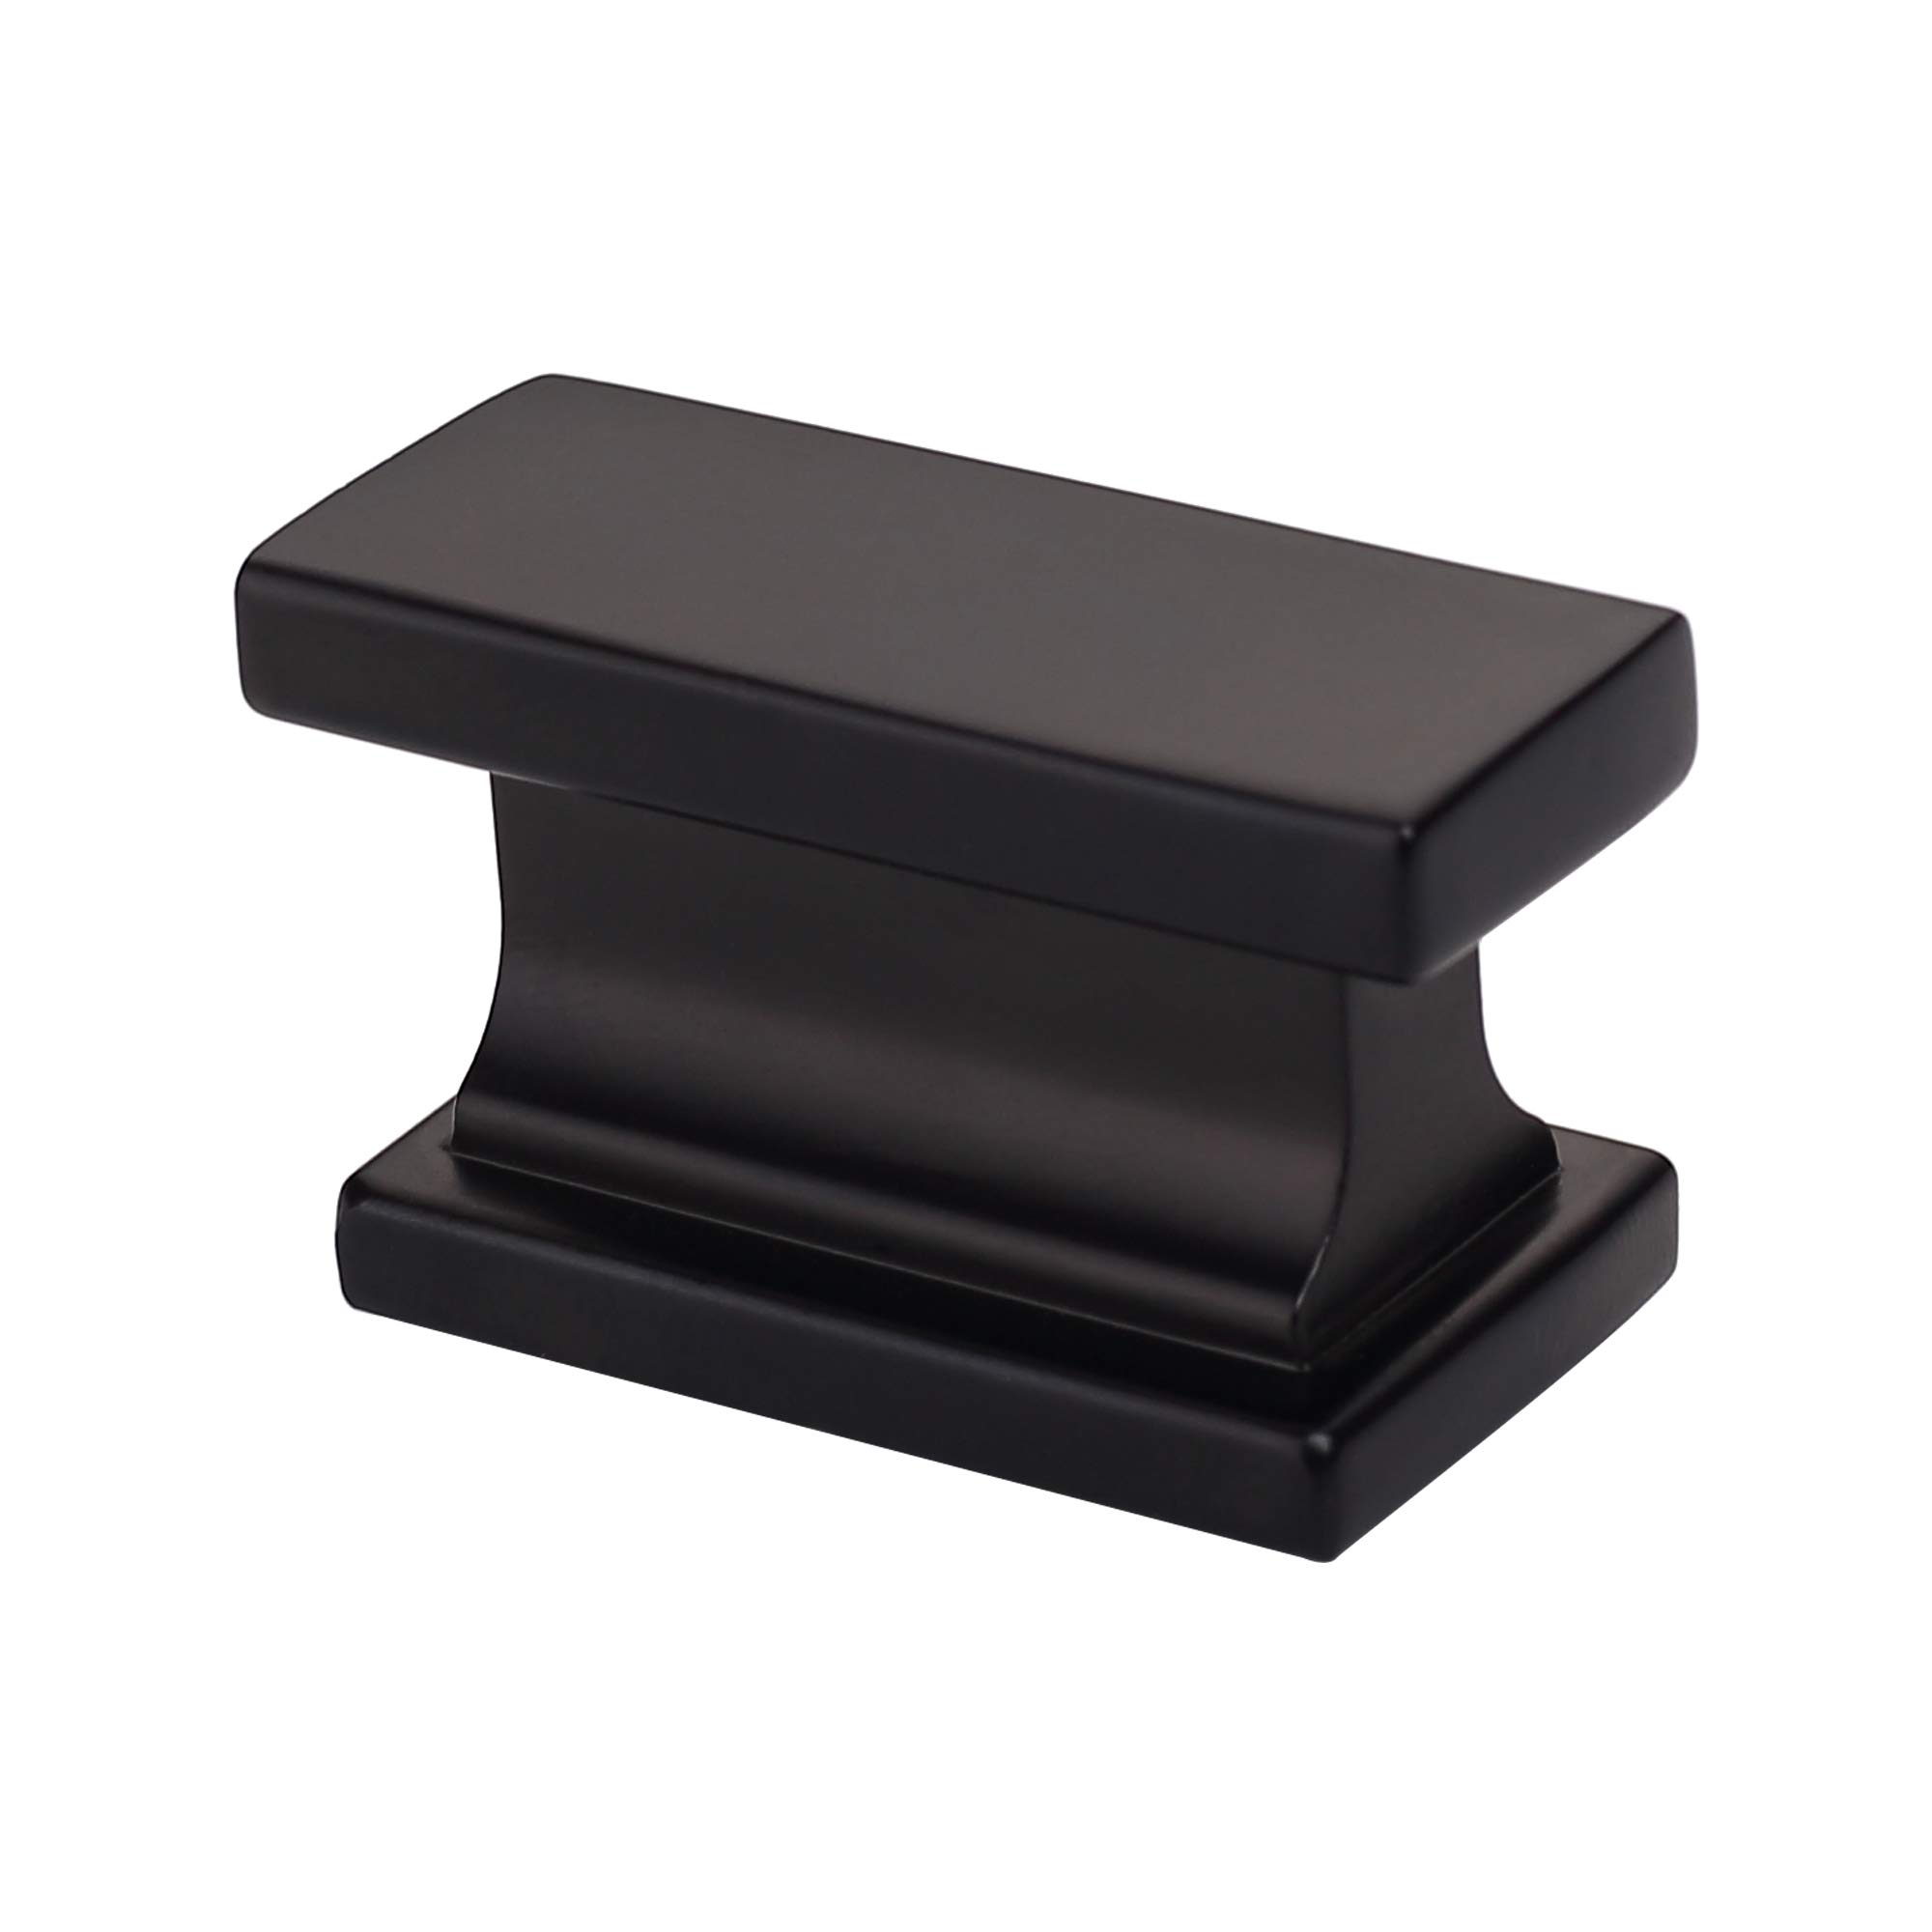 Alzassbg AL6061MB Flat Black, 1.46 Inch(37mm) Cabinet Hardware Rectangle Knobs for Cupboard and Drawer 10 Pack